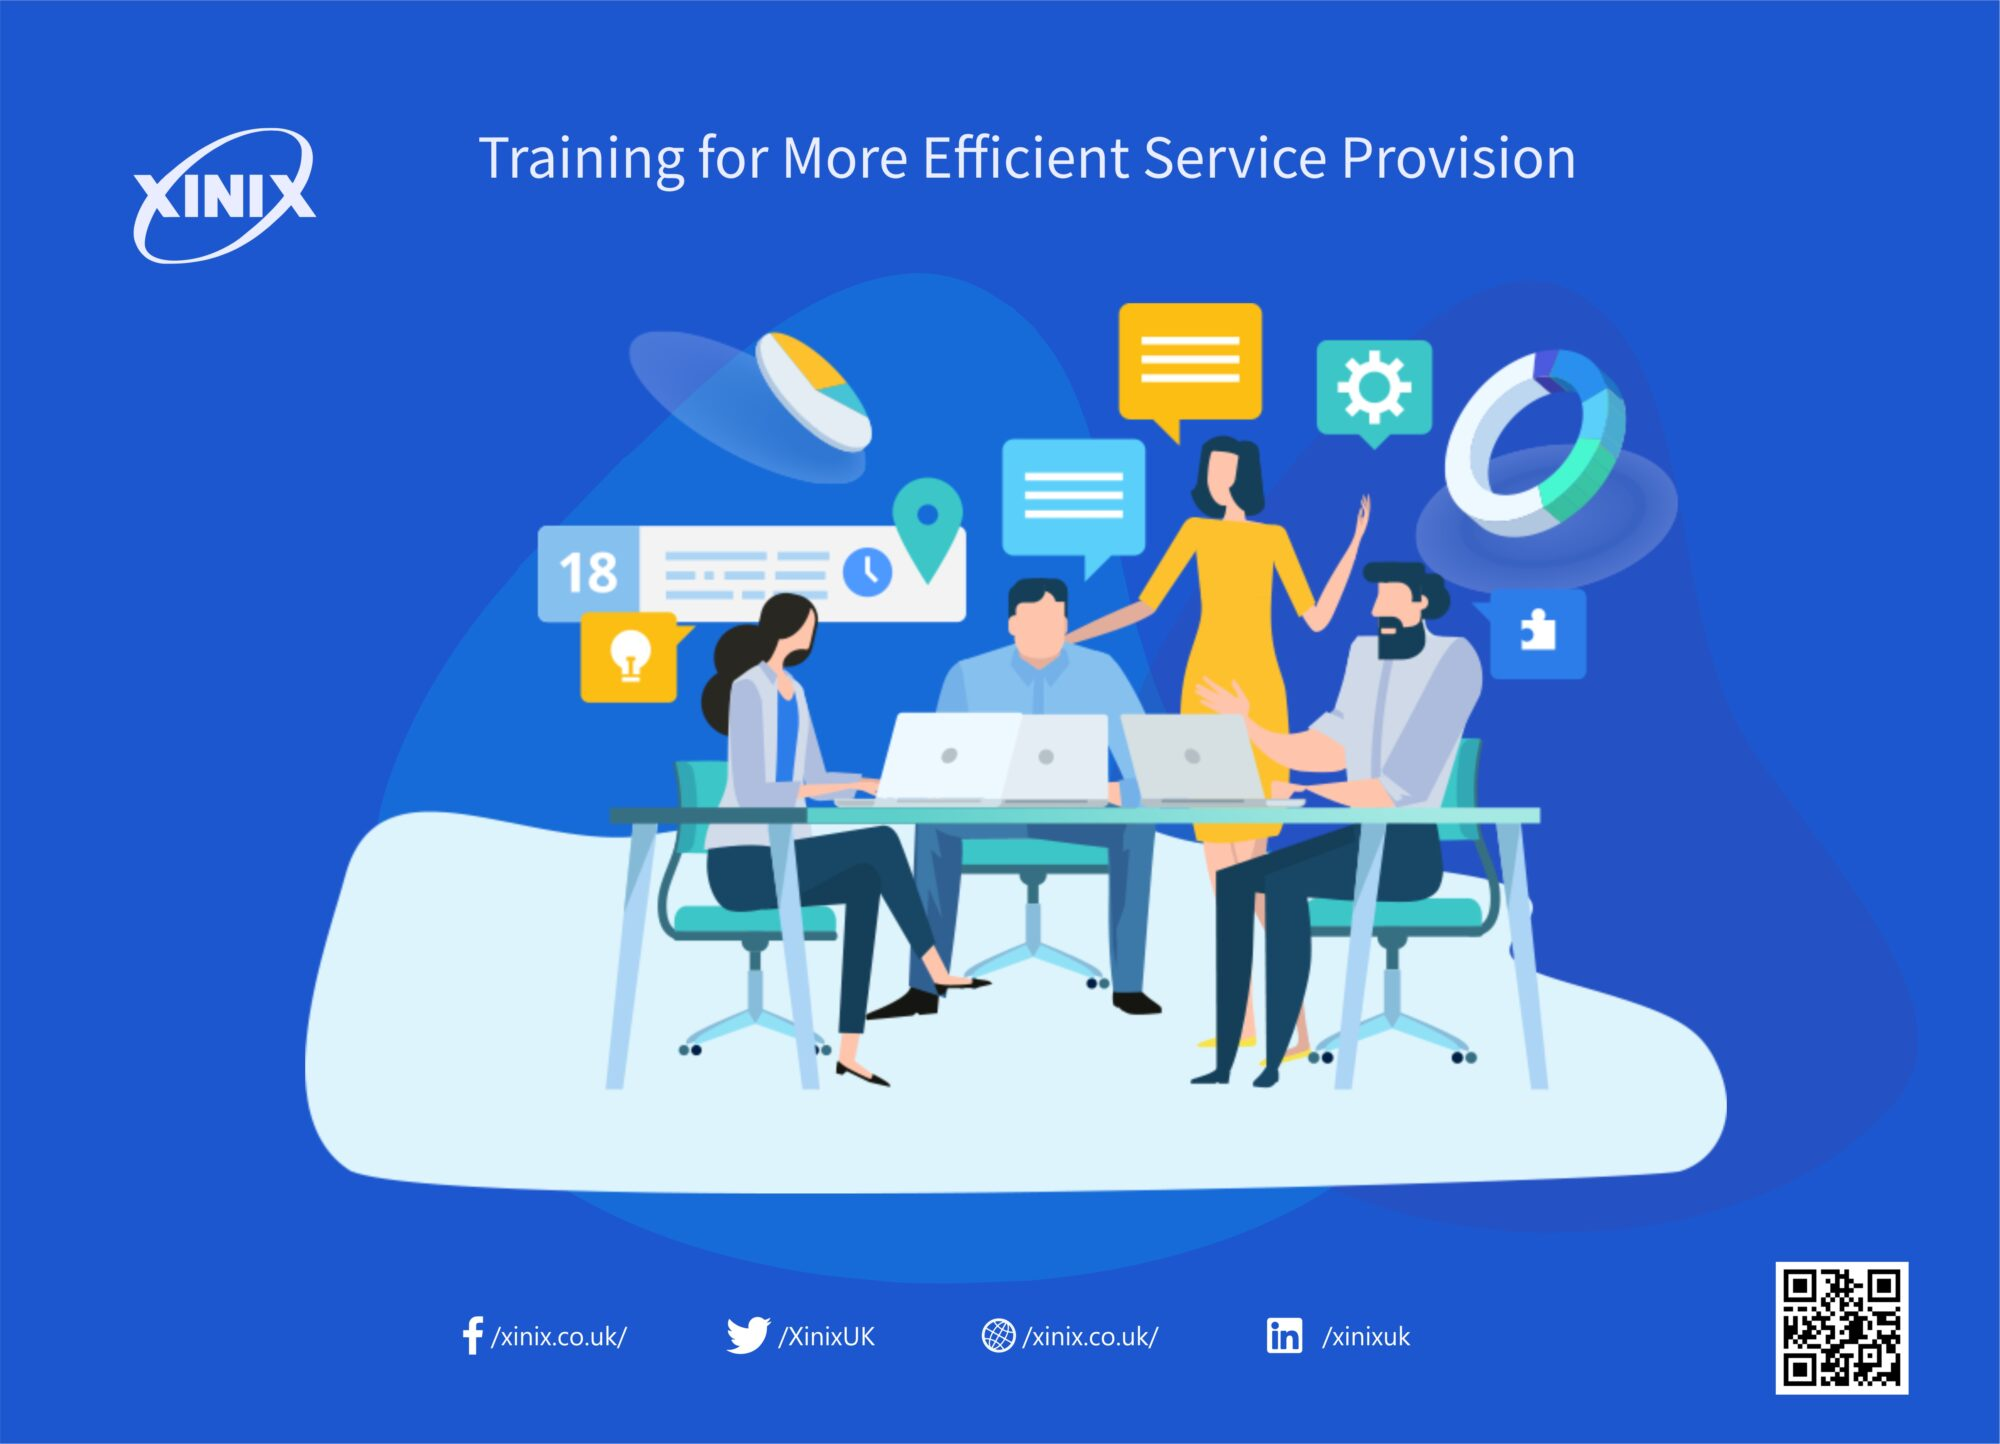 Training for More Efficient Service Provision